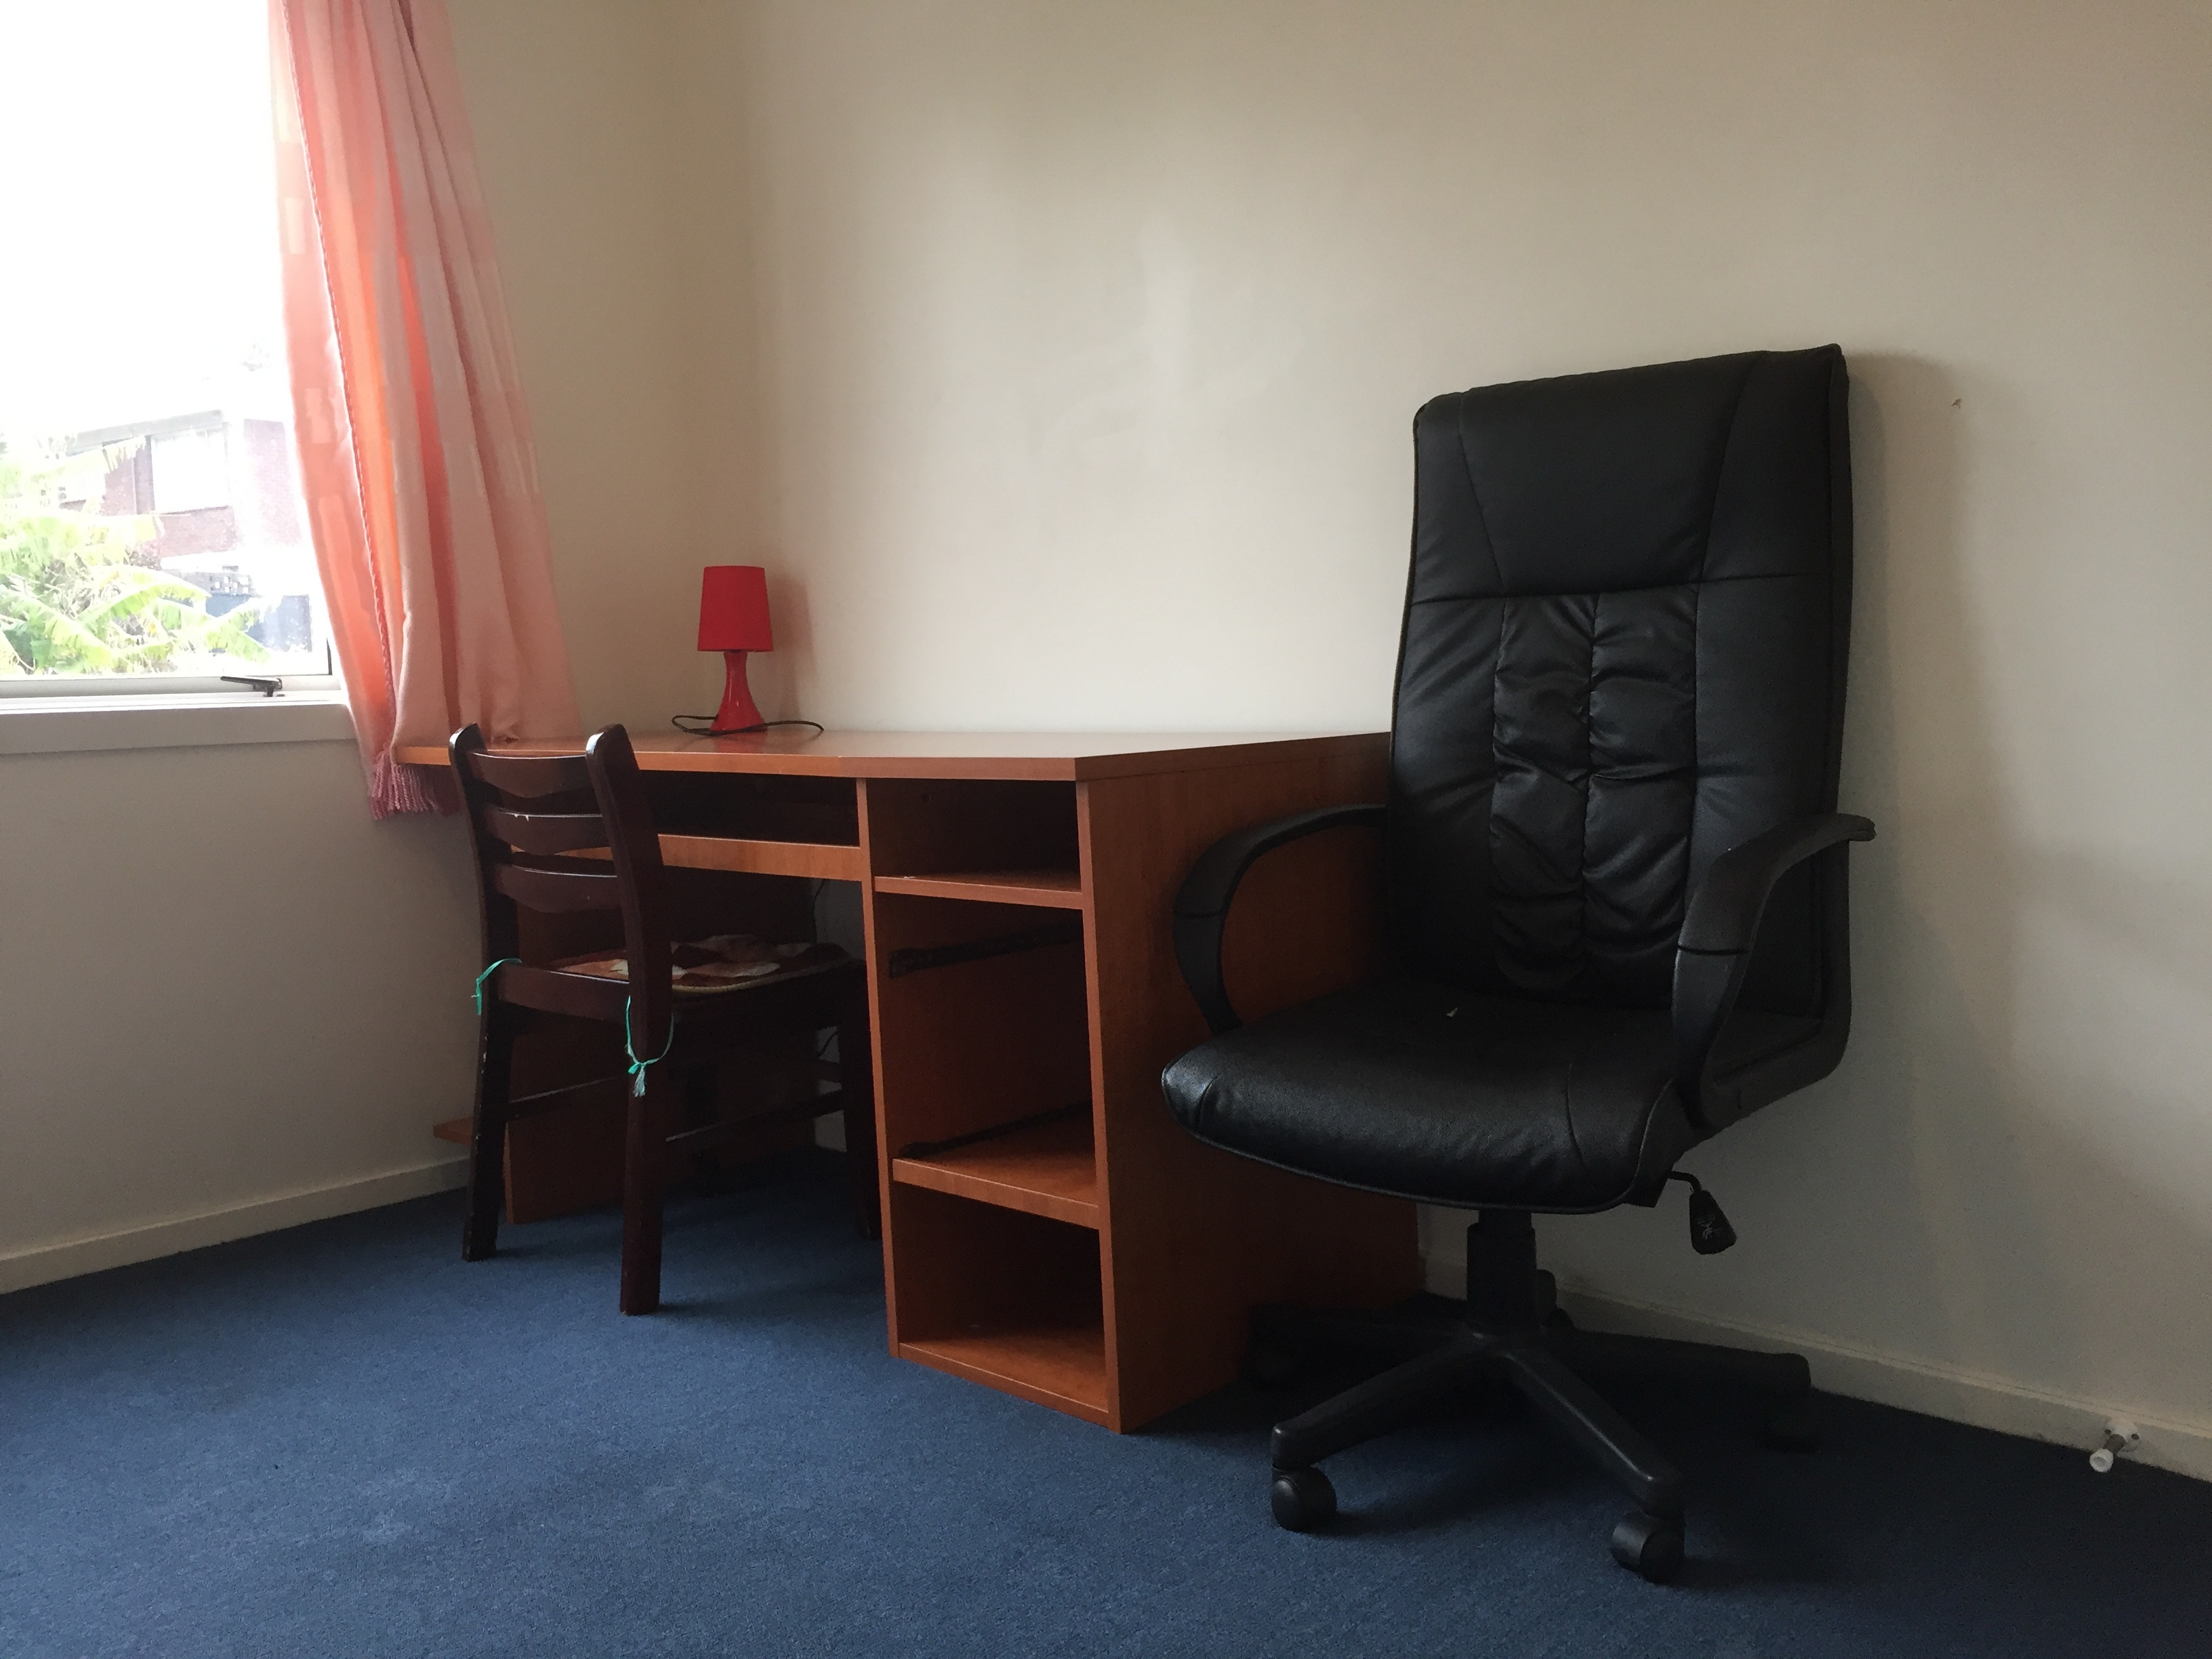 2 Very Clean Rooms Fully Furnished Available